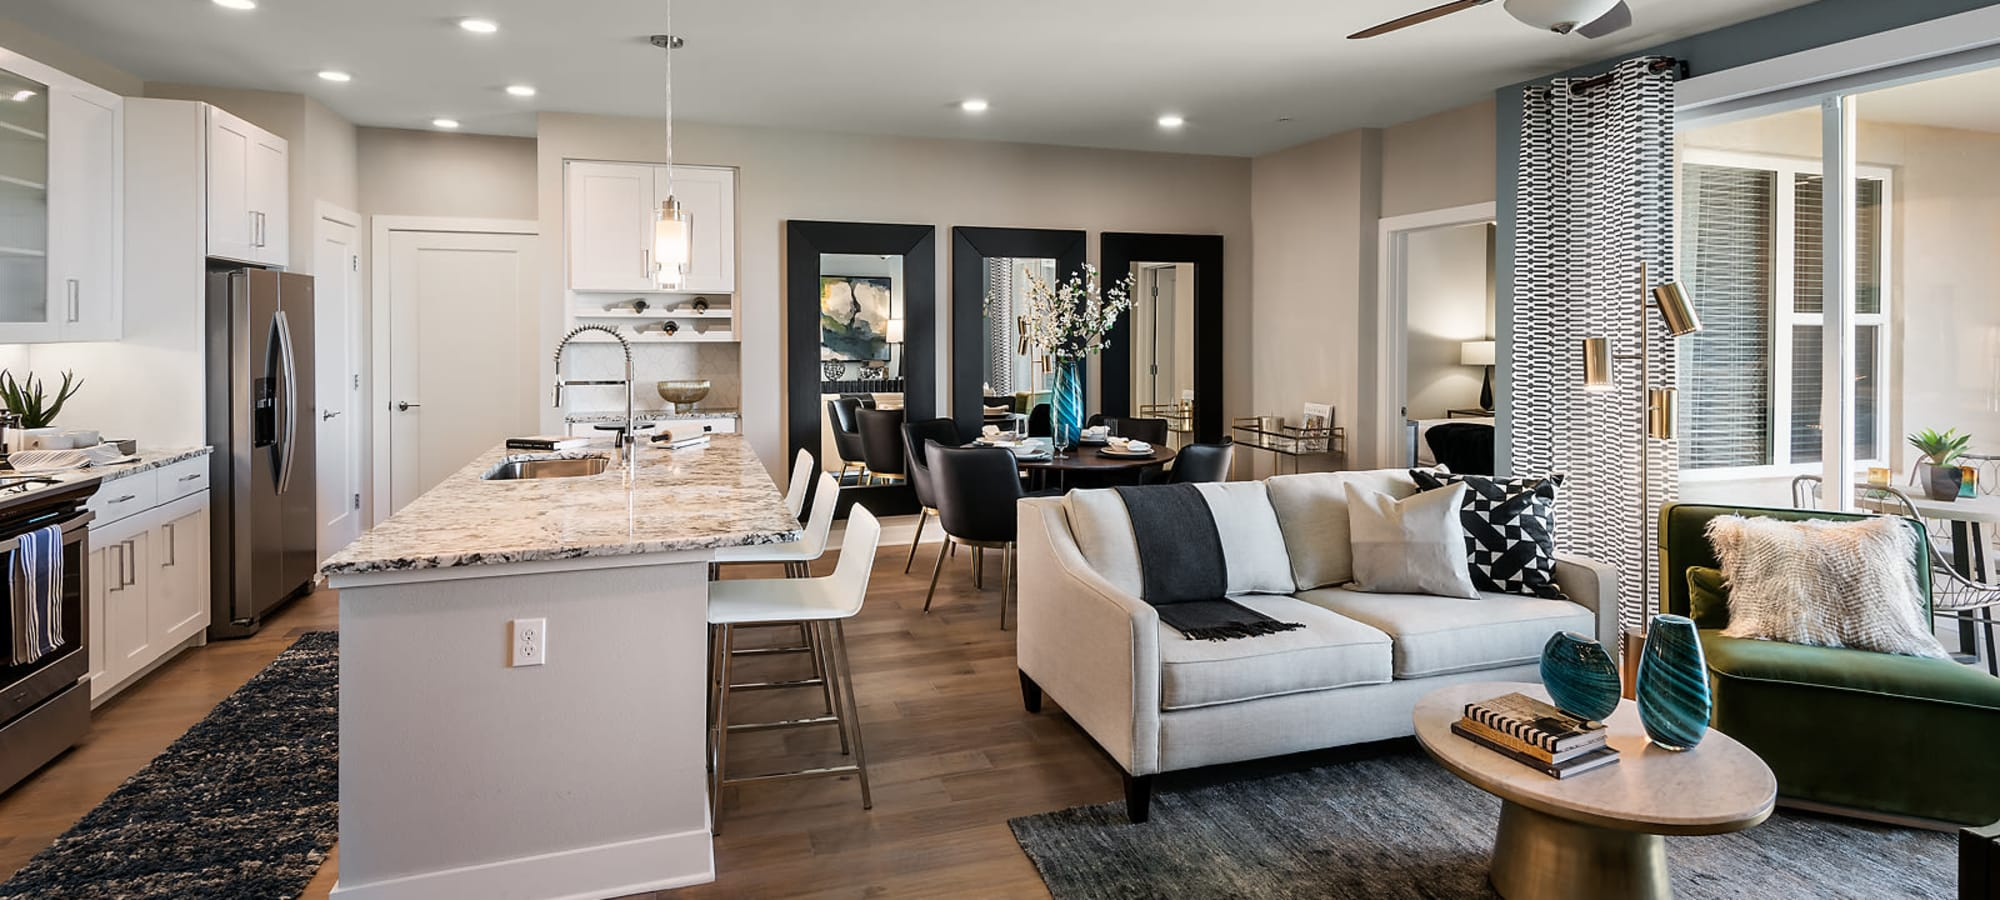 Spacious open floor plans at The Halsten at Chauncey Lane in Scottsdale, Arizona